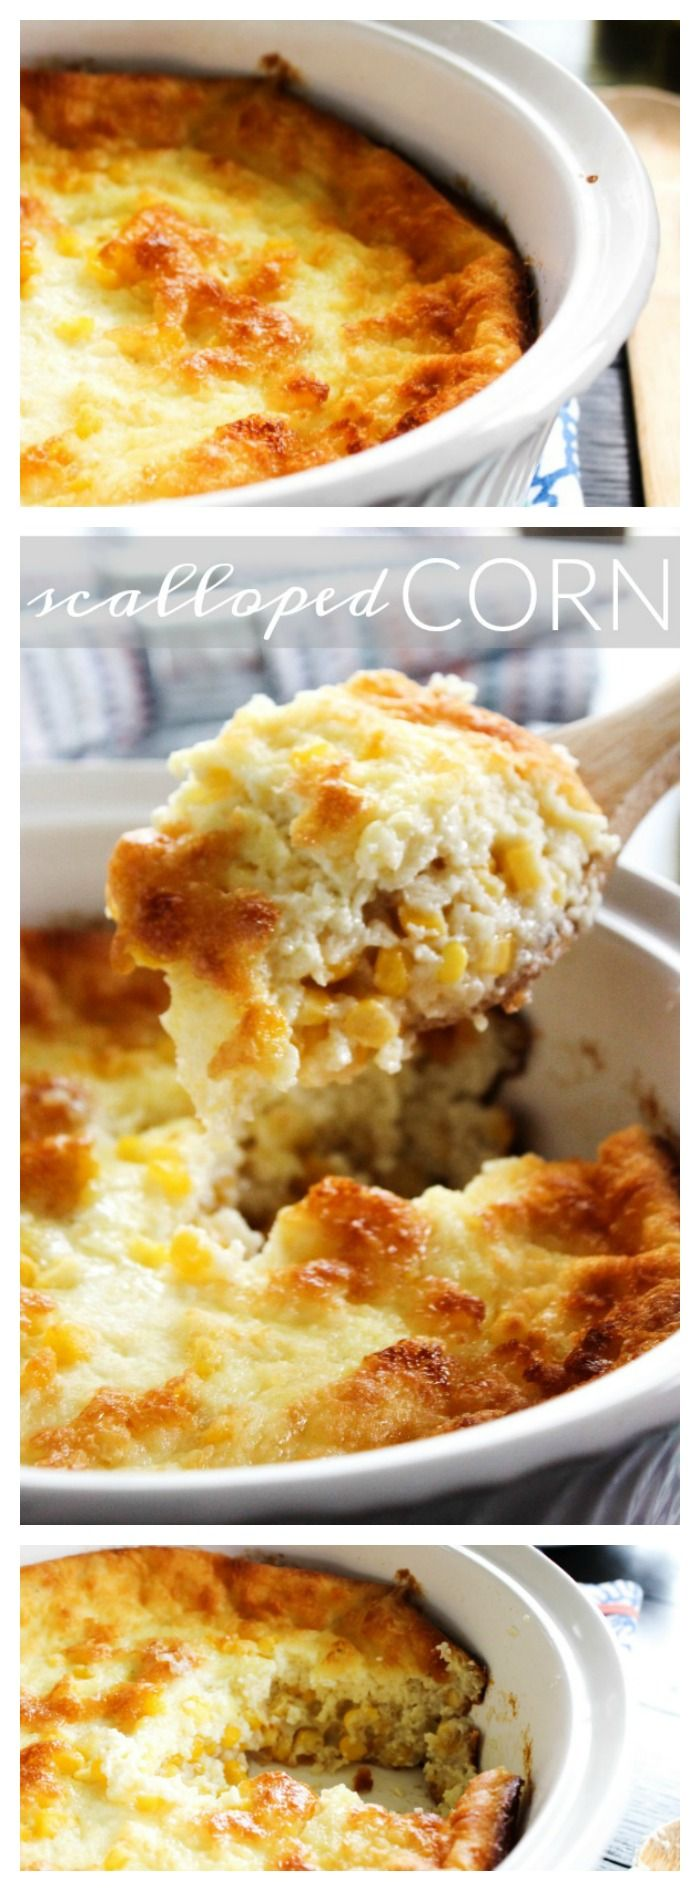 Scalloped Corn - t's like eating cornbread as a souffle. Best corn dish ever.